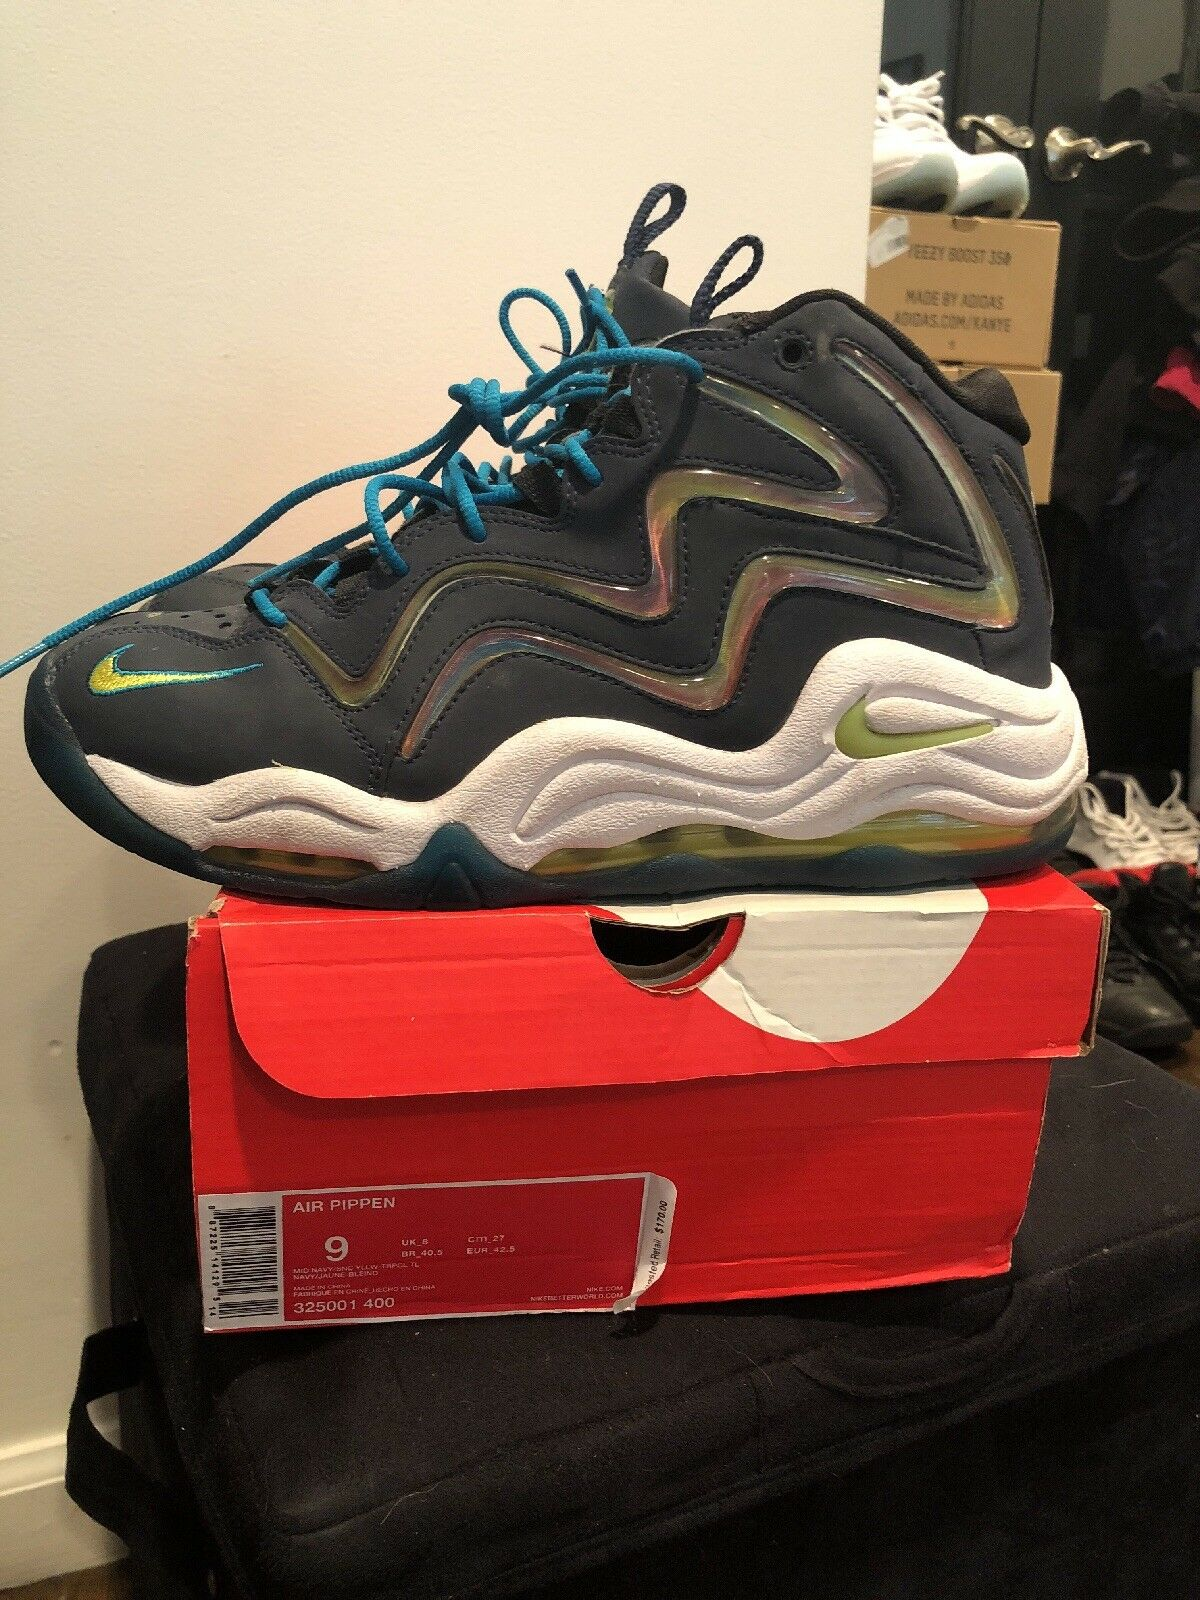 Nike Air Max Uptempo Teal Pippen Hologram 325001-400 Navy Teal Uptempo White Men's Size 9 a49090